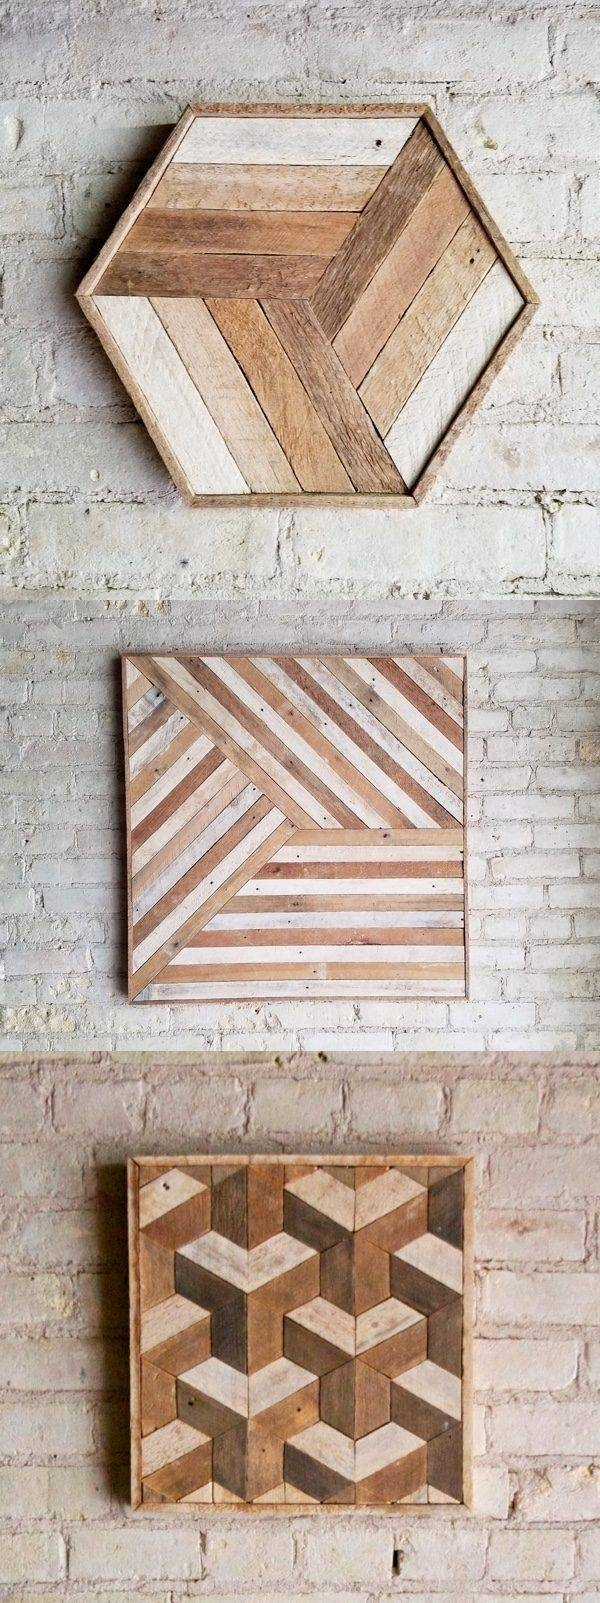 Best 25+ Wood Wall Art Ideas On Pinterest | Wood Art, Geometric In 2017 Wood Wall Art (View 4 of 25)